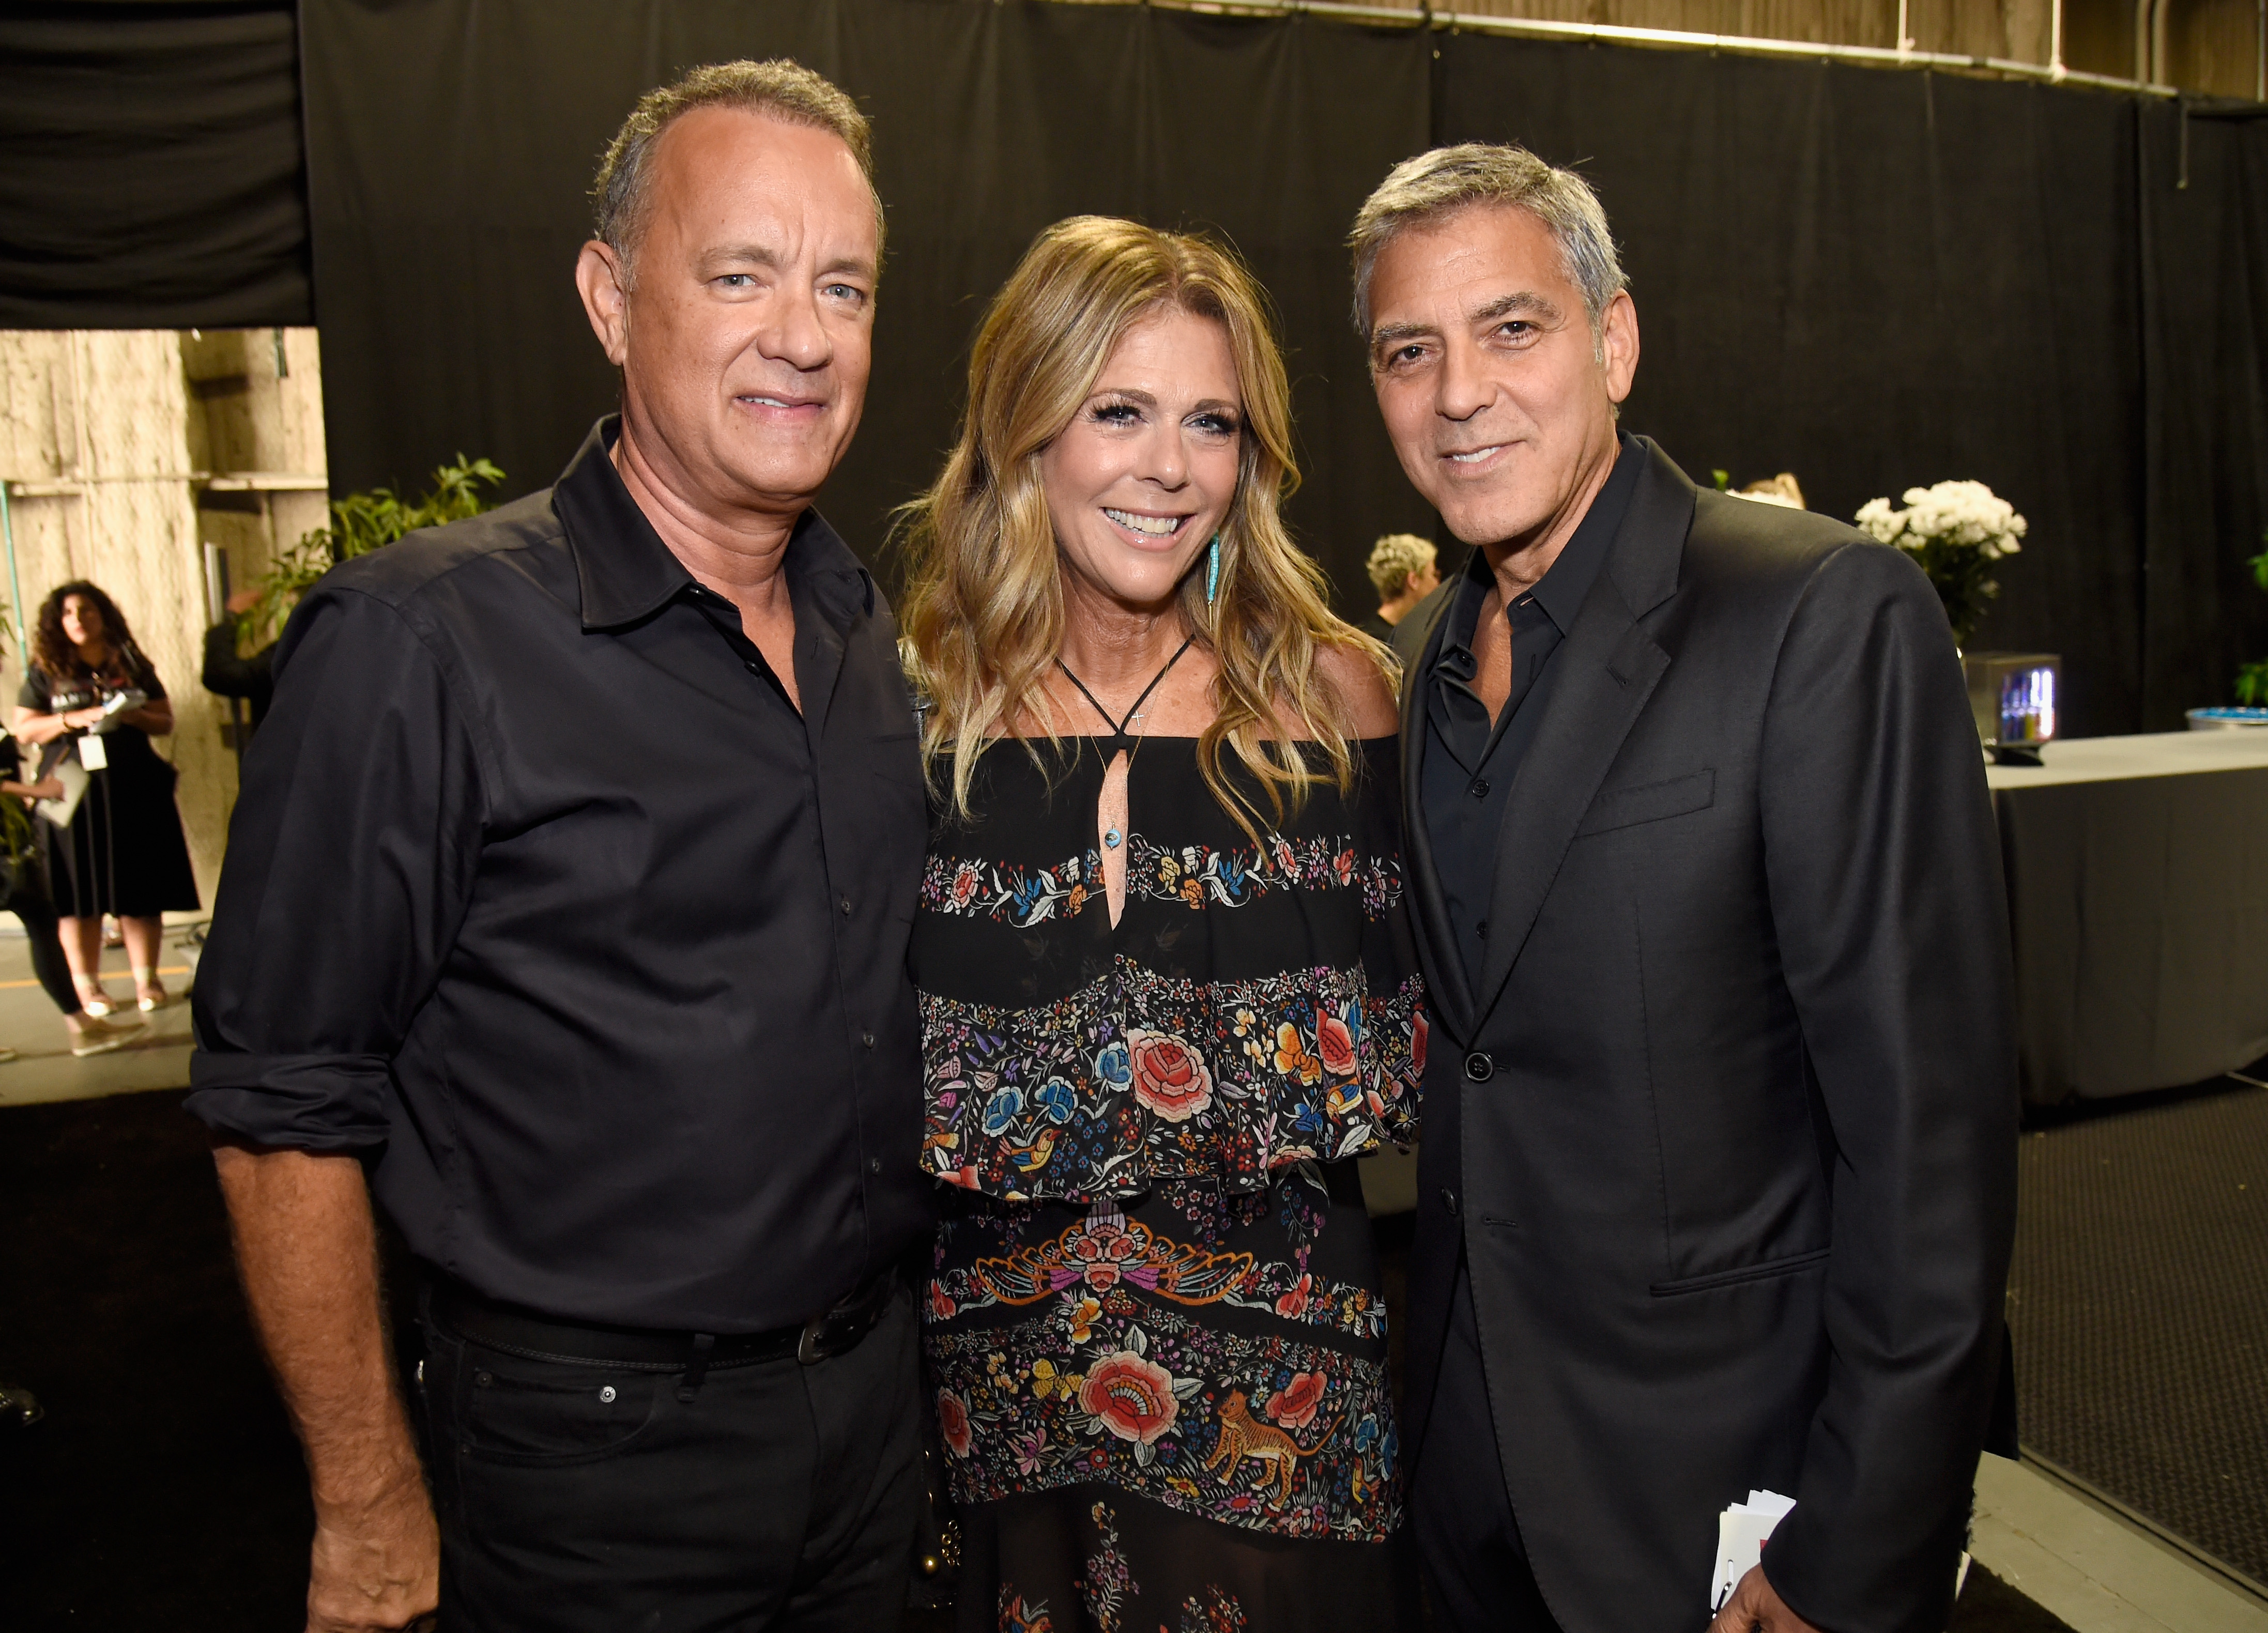 "<div class=""meta image-caption""><div class=""origin-logo origin-image none""><span>none</span></div><span class=""caption-text"">Tom Hanks, Rita Wilson and George Clooney attend Hand in Hand: A Benefit for Hurricane Relief at Universal Studios AMC on September 12, 2017 in Universal City, California. (Kevin Mazur/Hand in Hand/Getty Images)</span></div>"